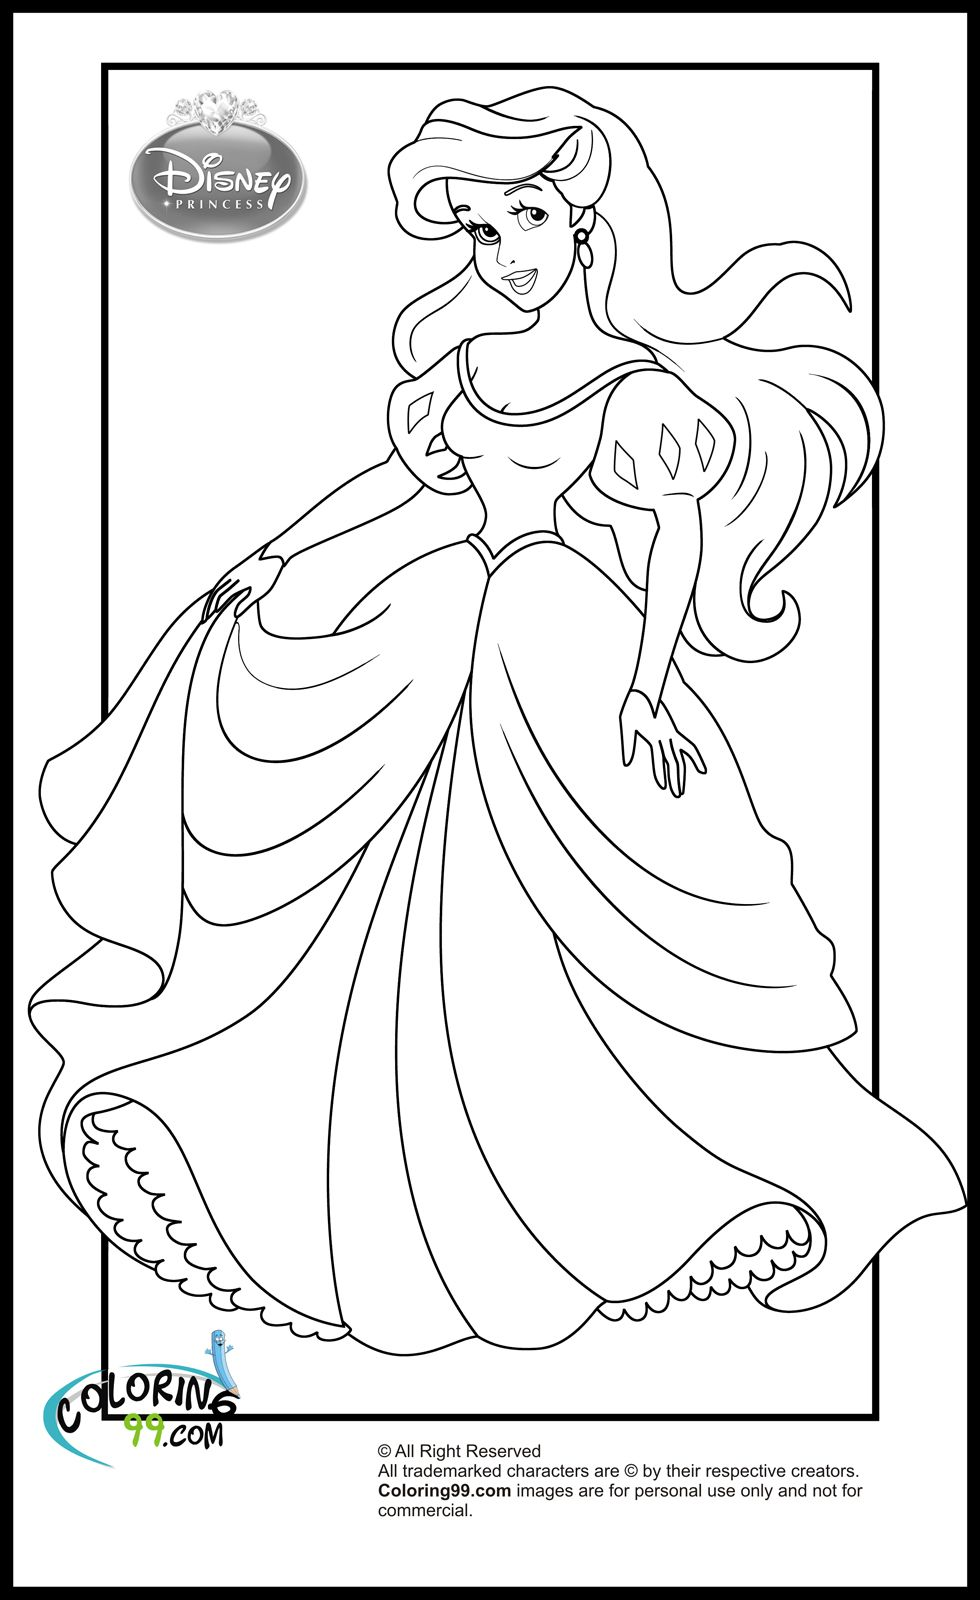 Disney princess birthday coloring pages - Disney Princess Ariel Coloring Pages Edl